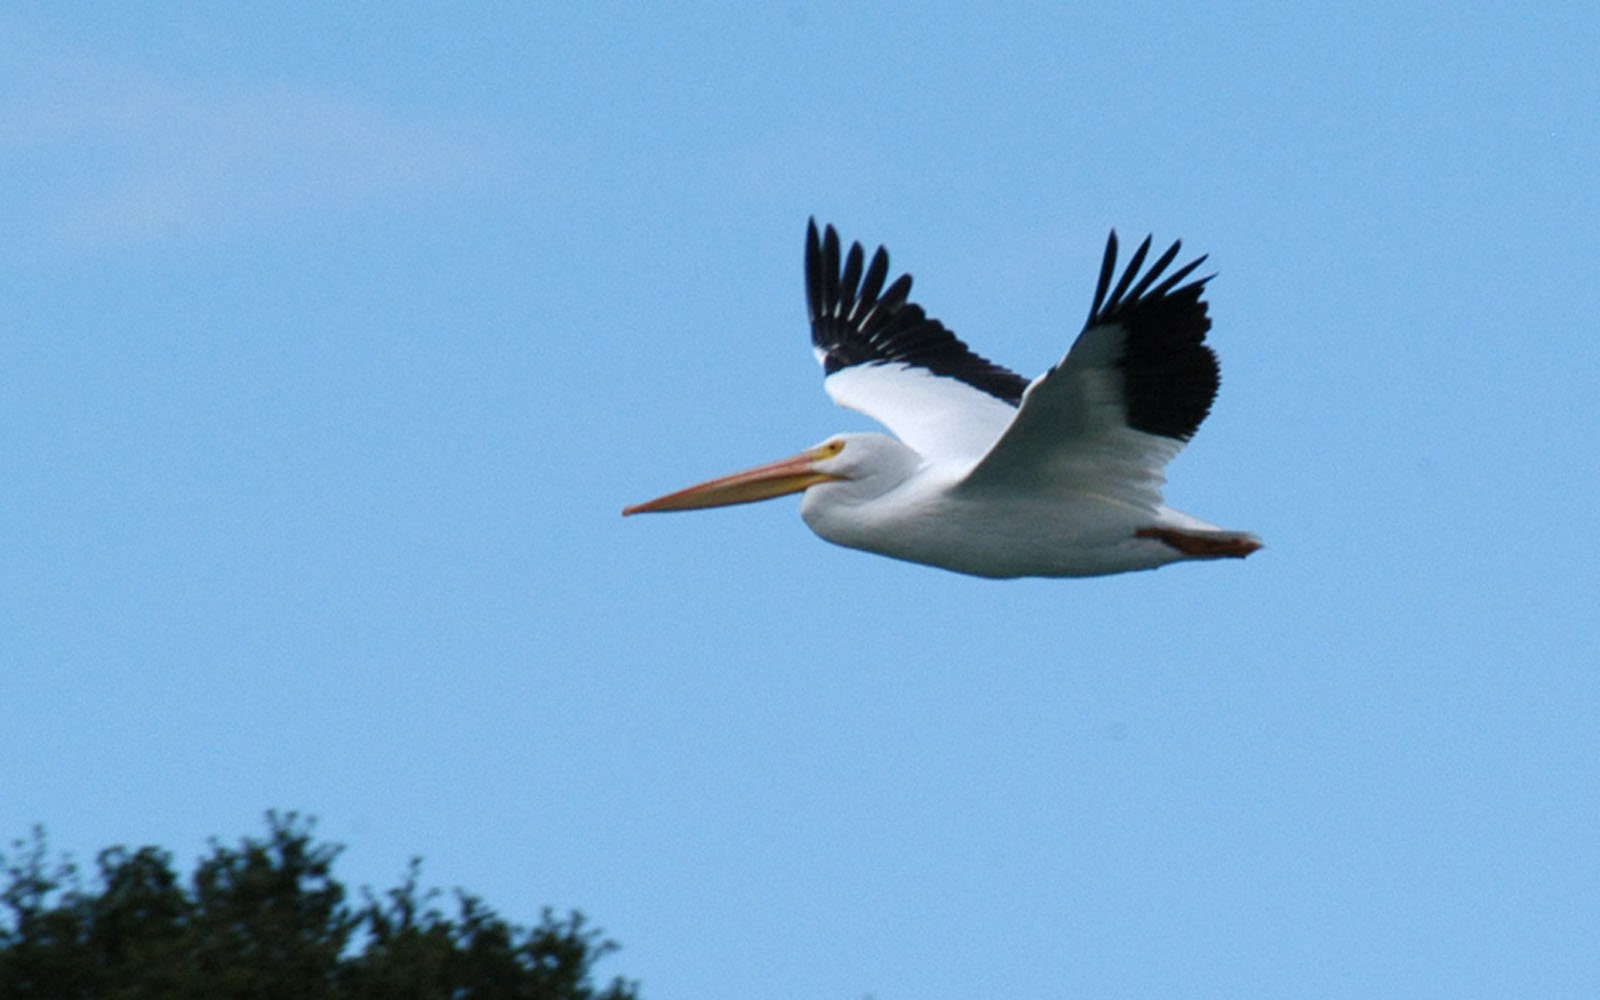 Cute Colourful Wallpapers Free Download Wallpapers American White Pelican Wallpapers